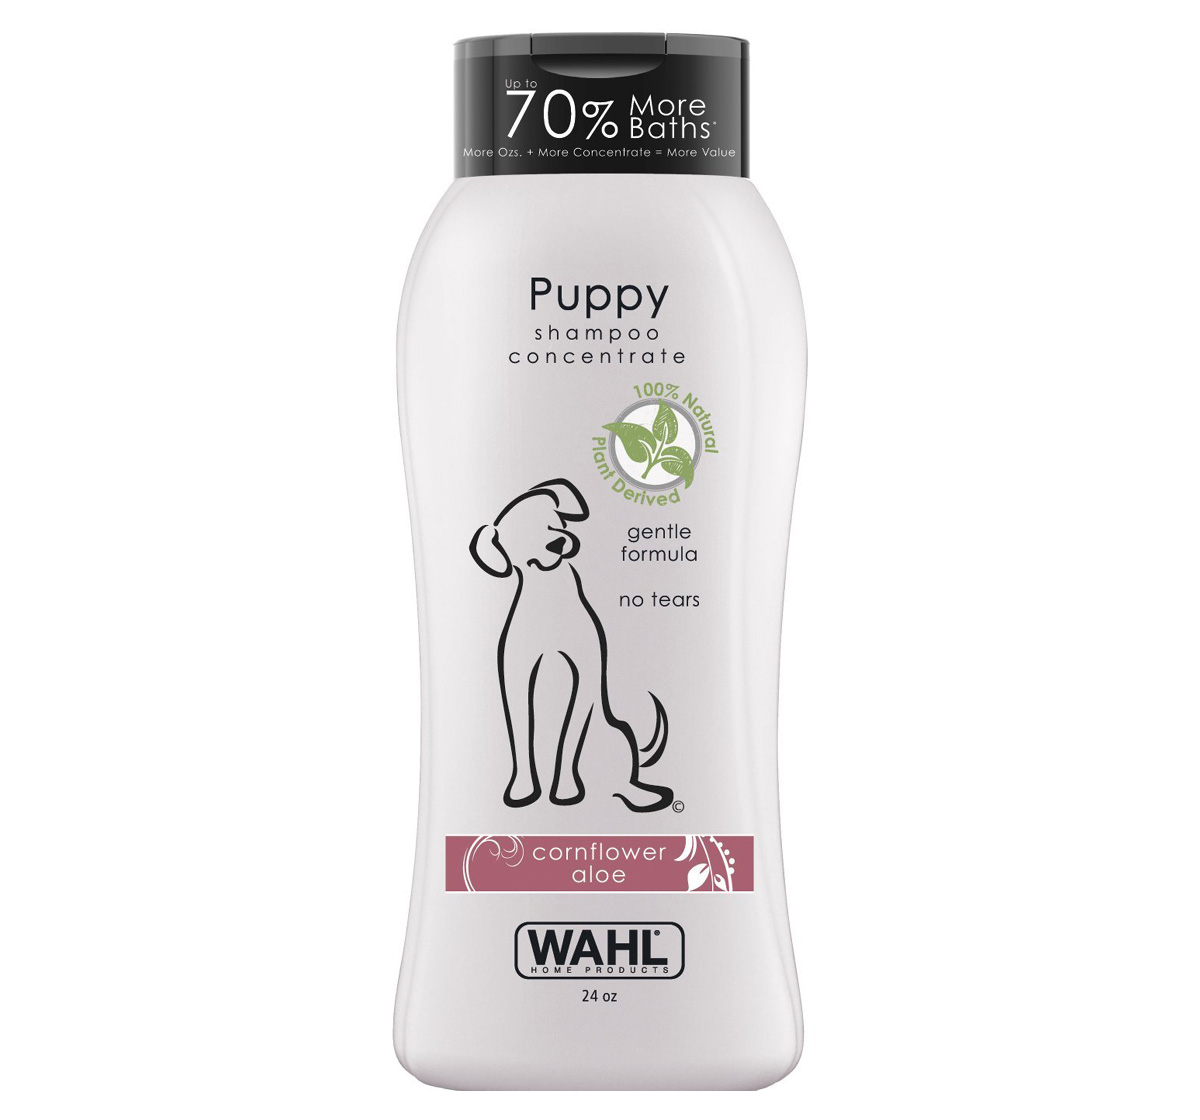 Wahl Puppy Shampoo - 709 ml